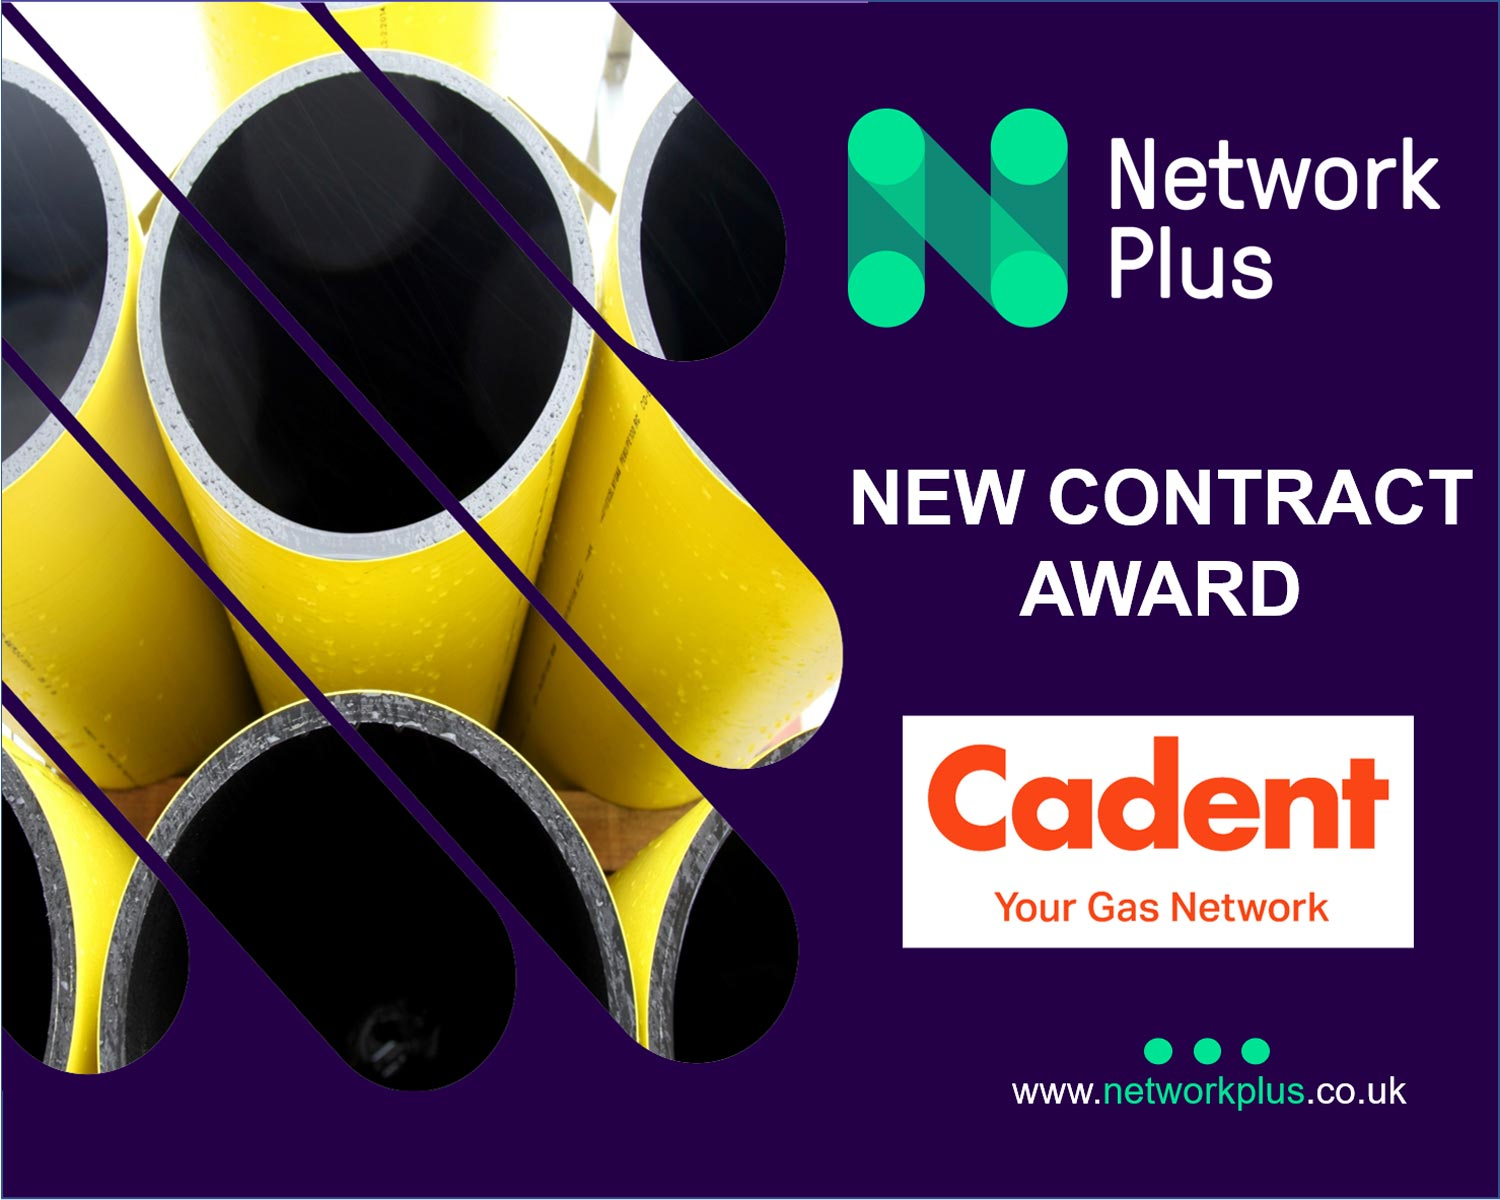 Cadent Network Plus Contract